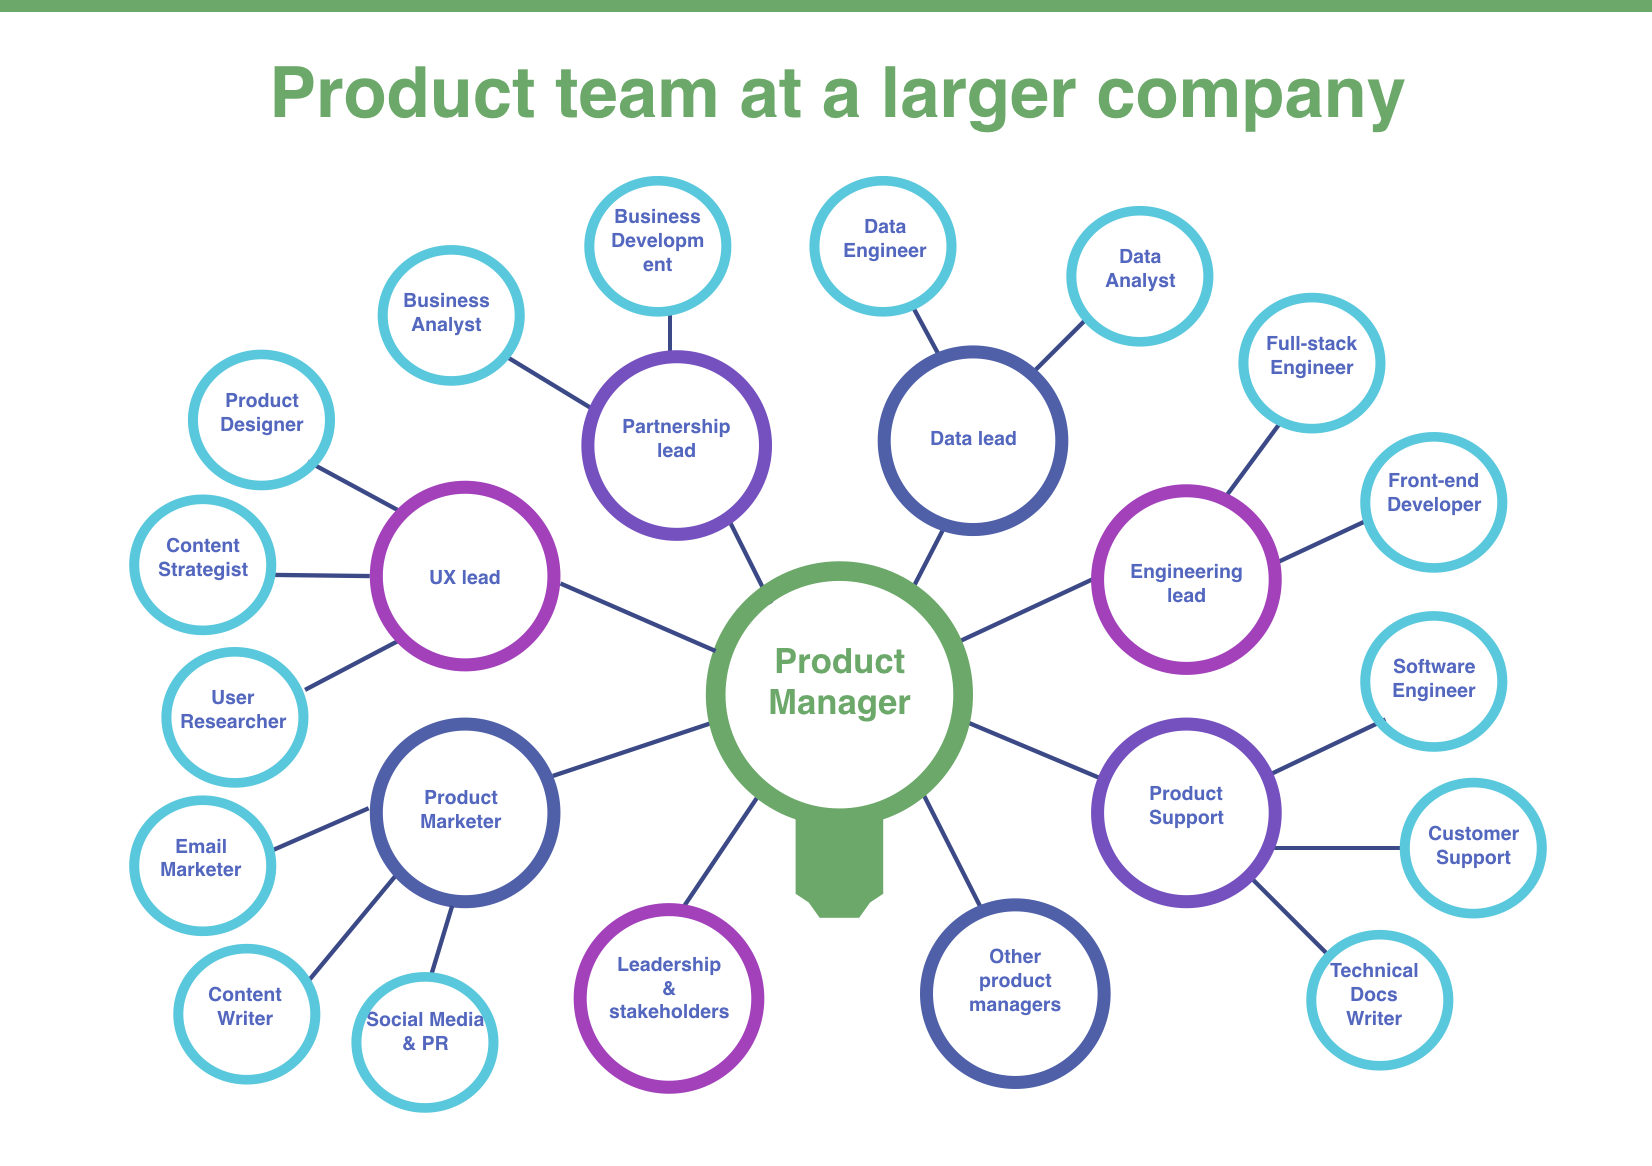 So you want to be a Product Manager? - Noteworthy - The